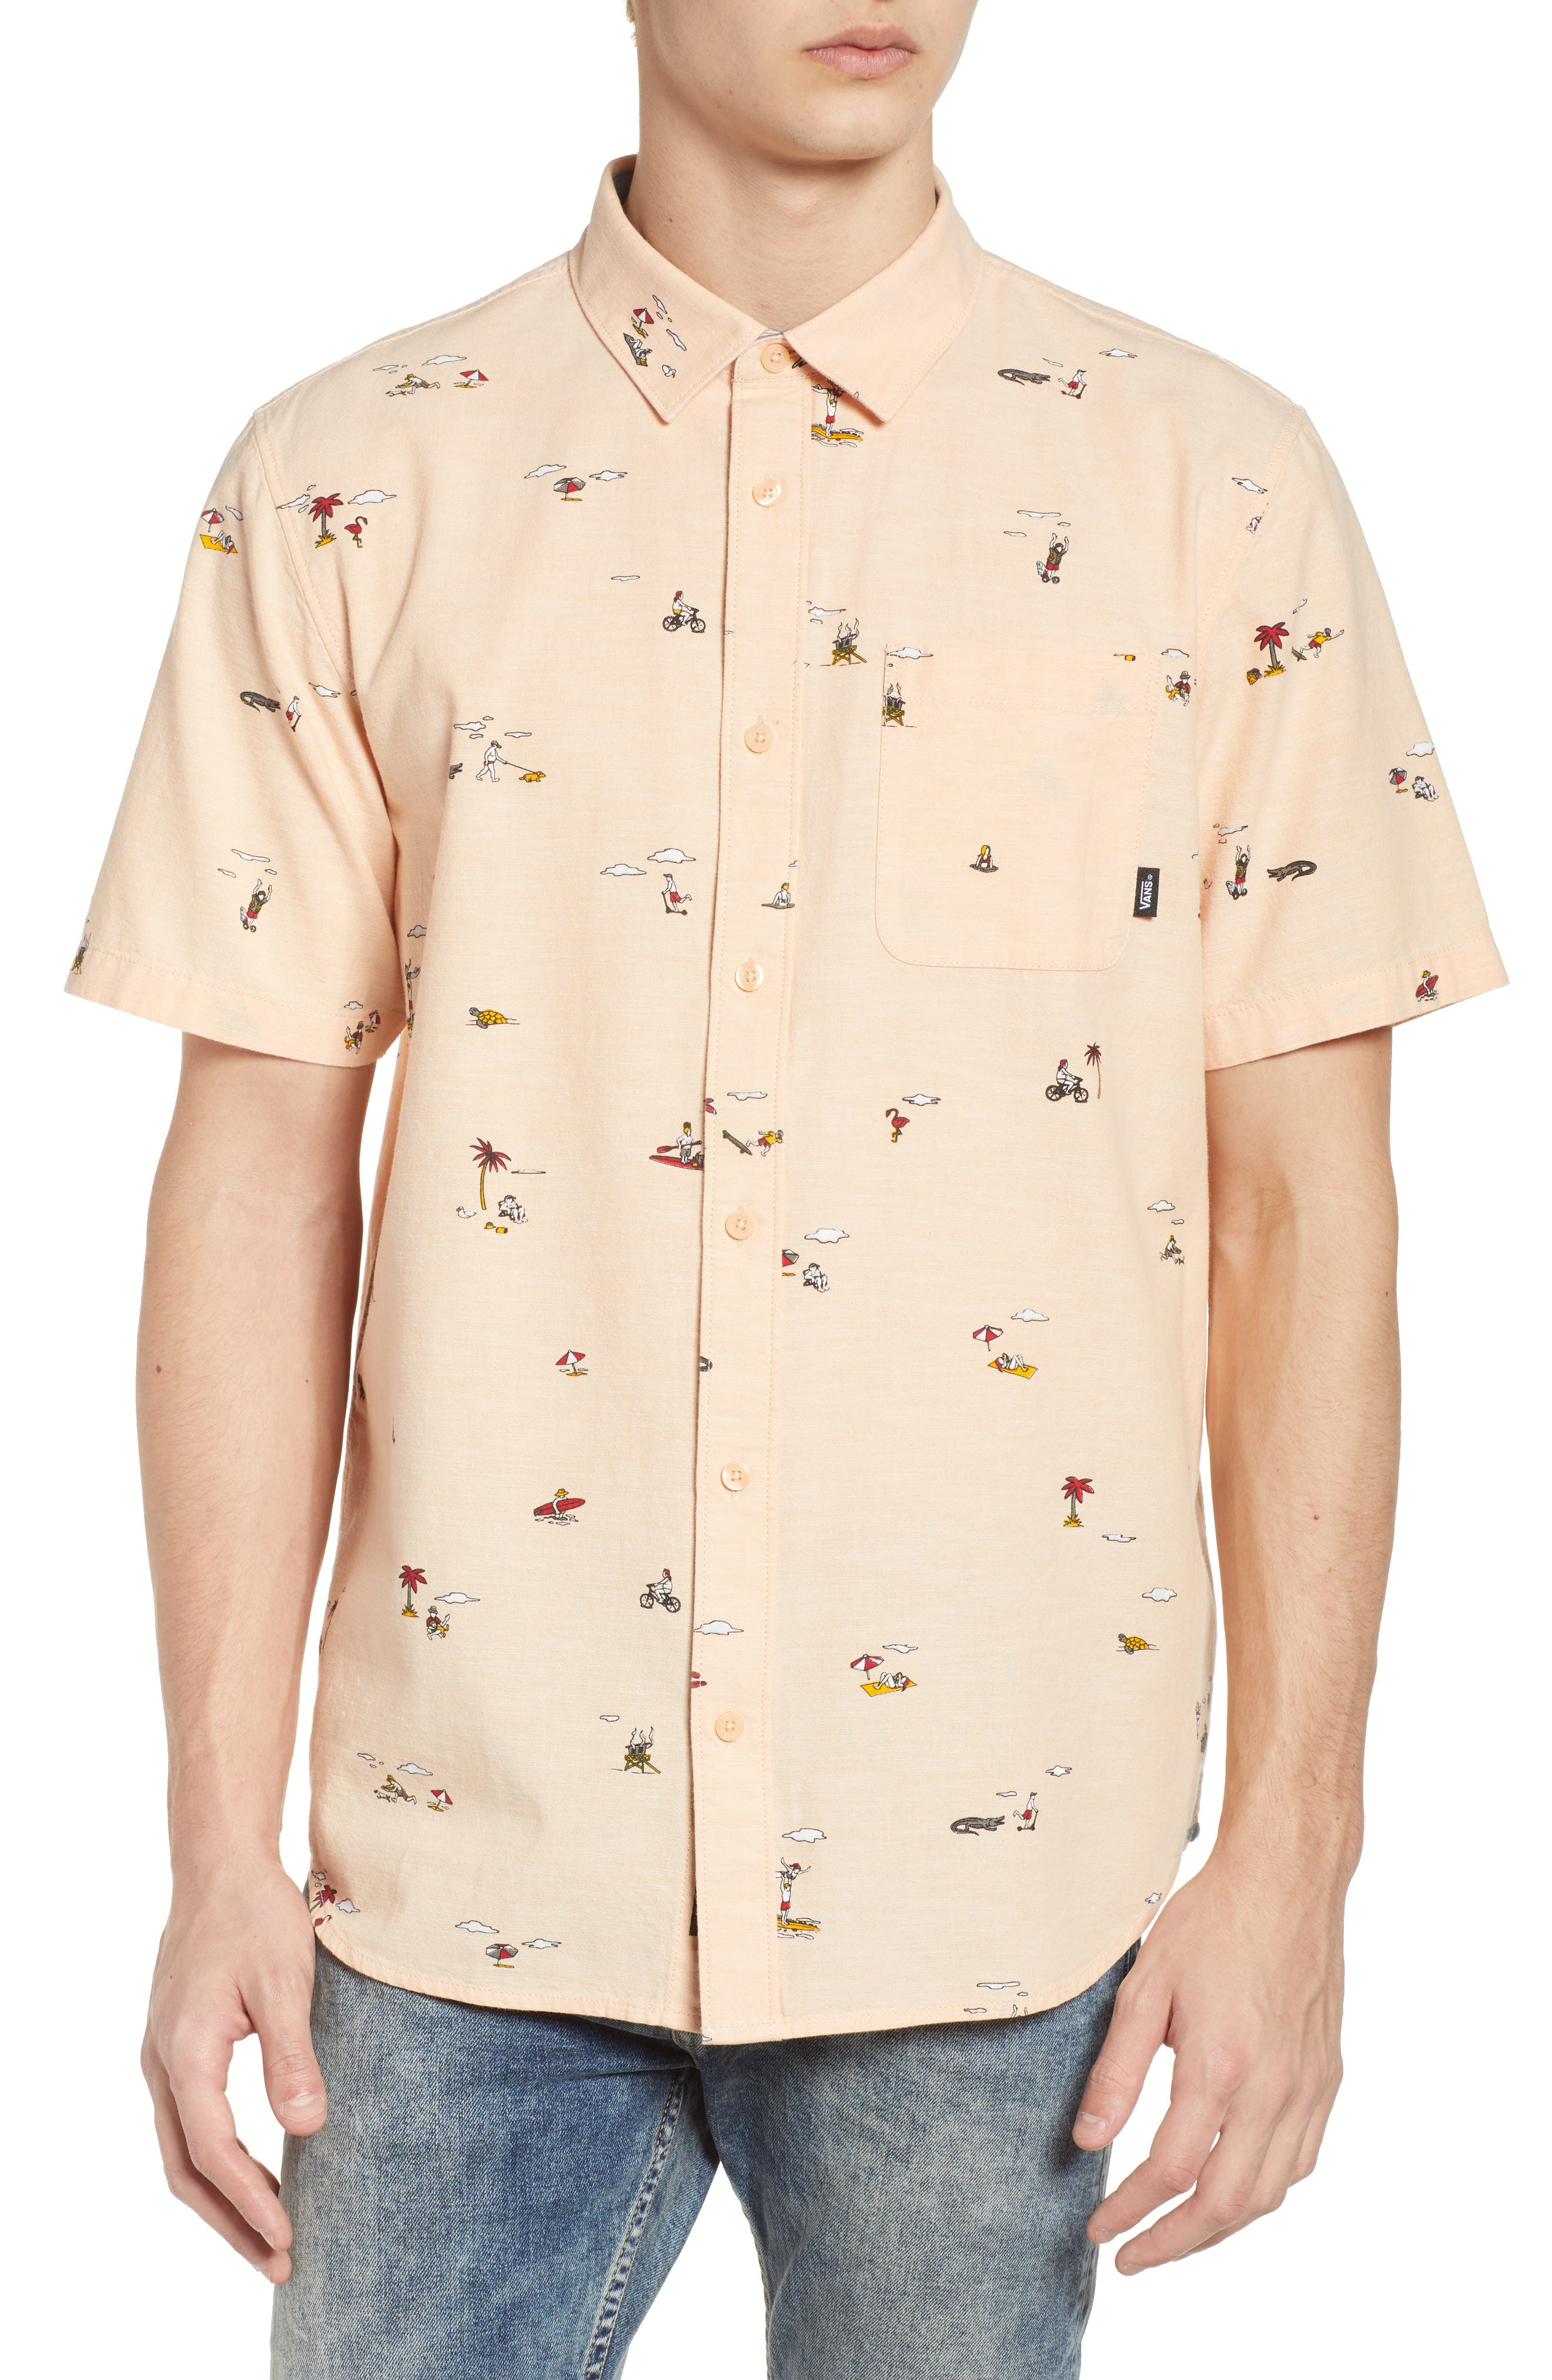 Tres Palmas Short Sleeve Shirt,                             Main thumbnail 1, color,